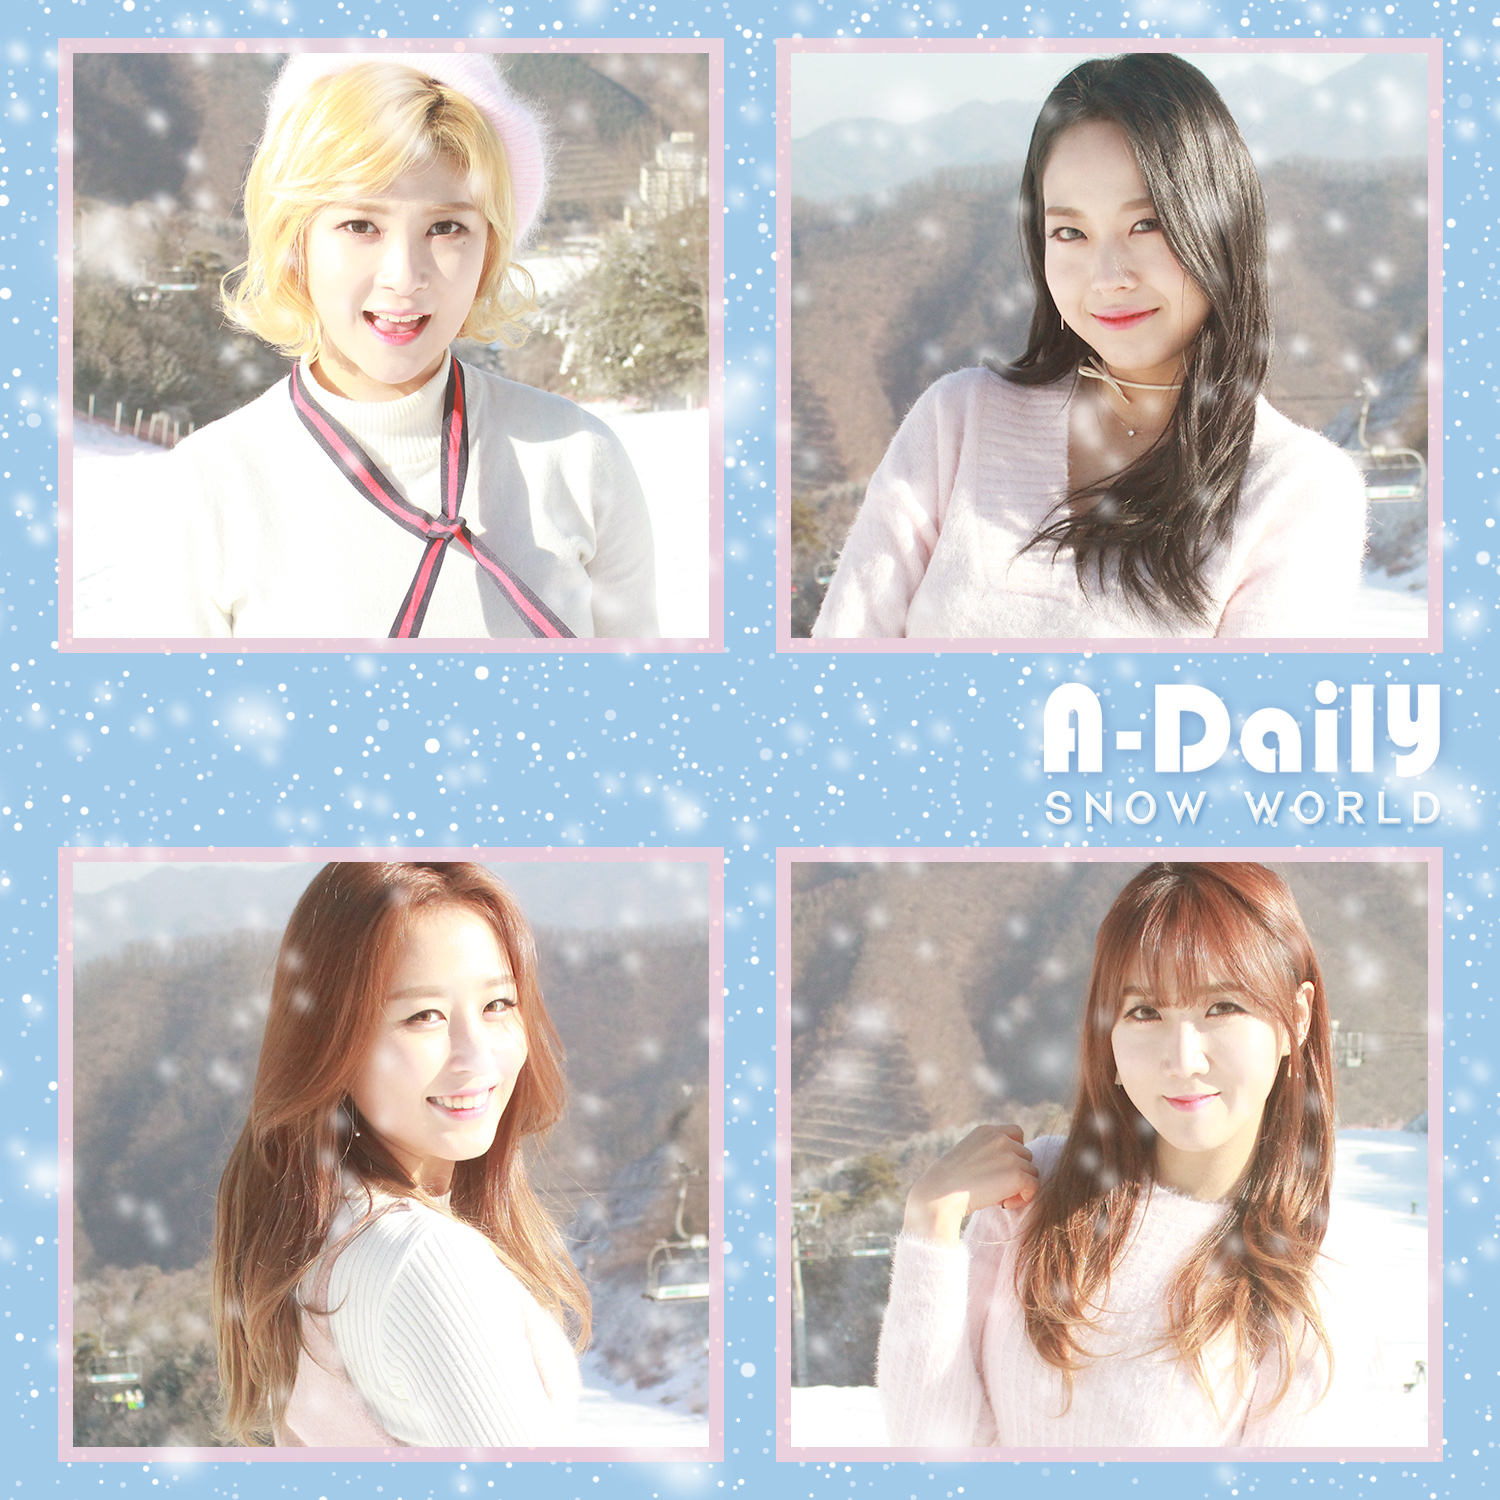 20170219.01.01 A-Daily - Snow World cover.jpg